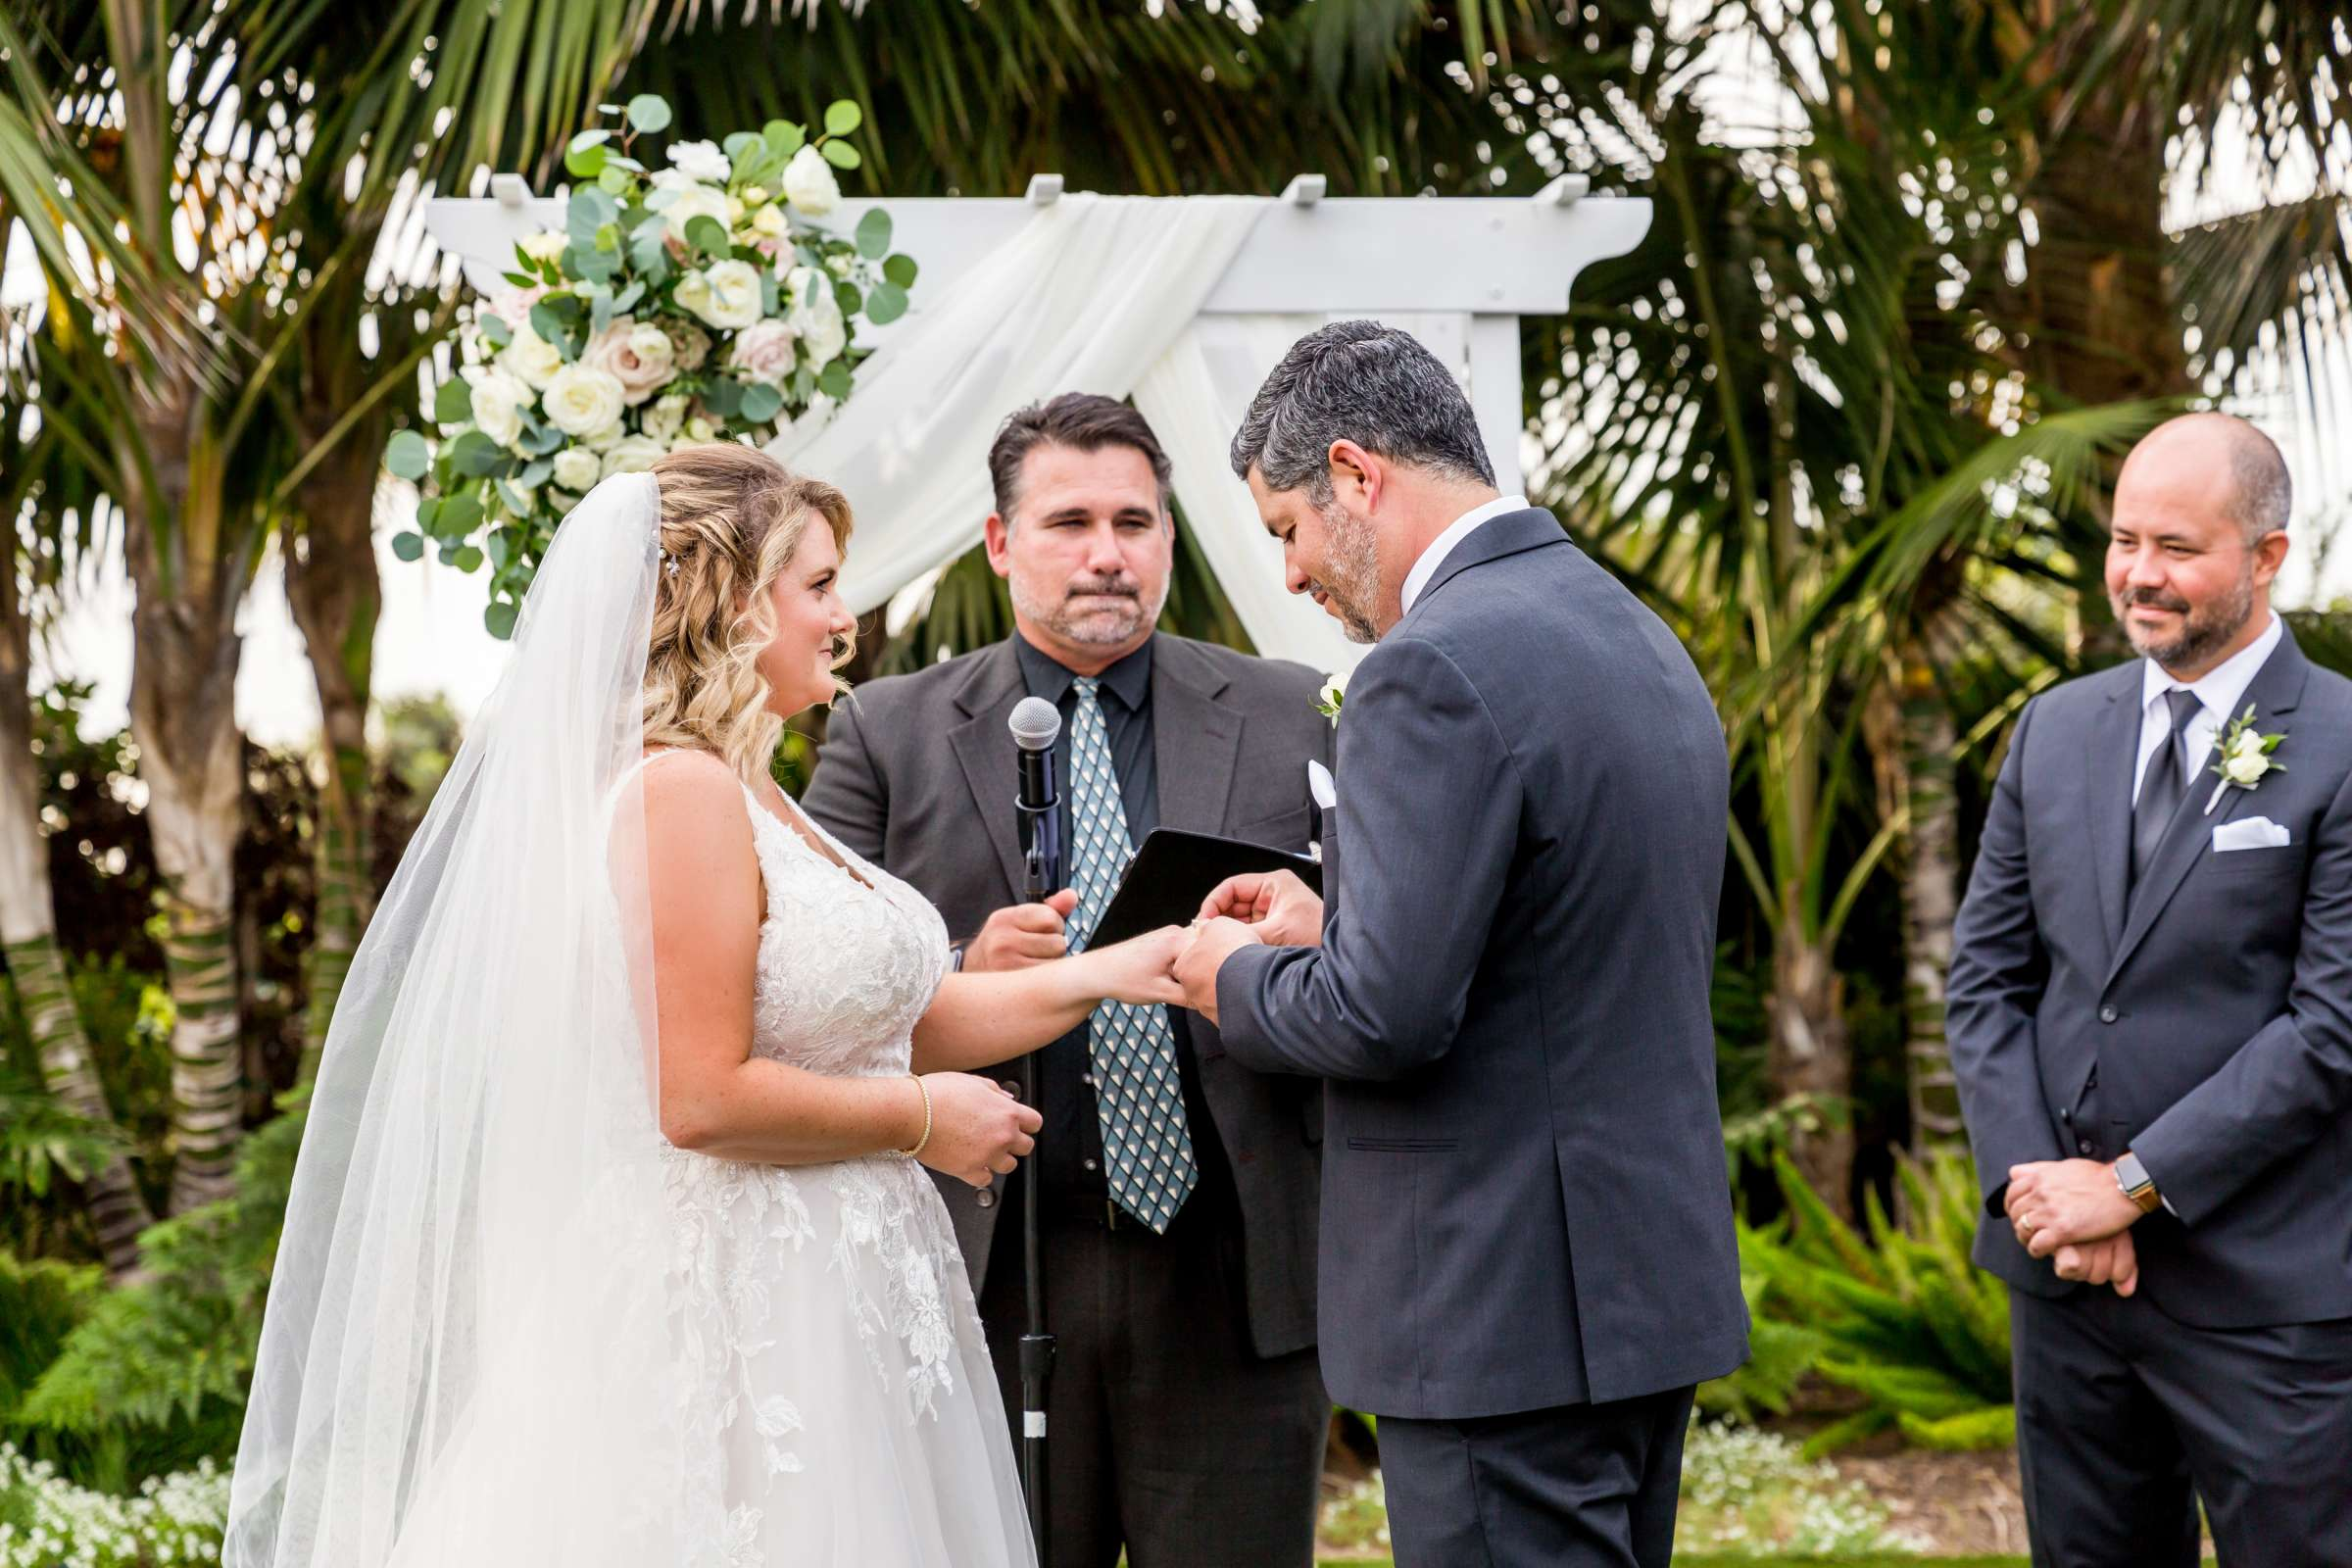 Cape Rey Carlsbad, A Hilton Resort Wedding, Michelle and Justin Wedding Photo #64 by True Photography